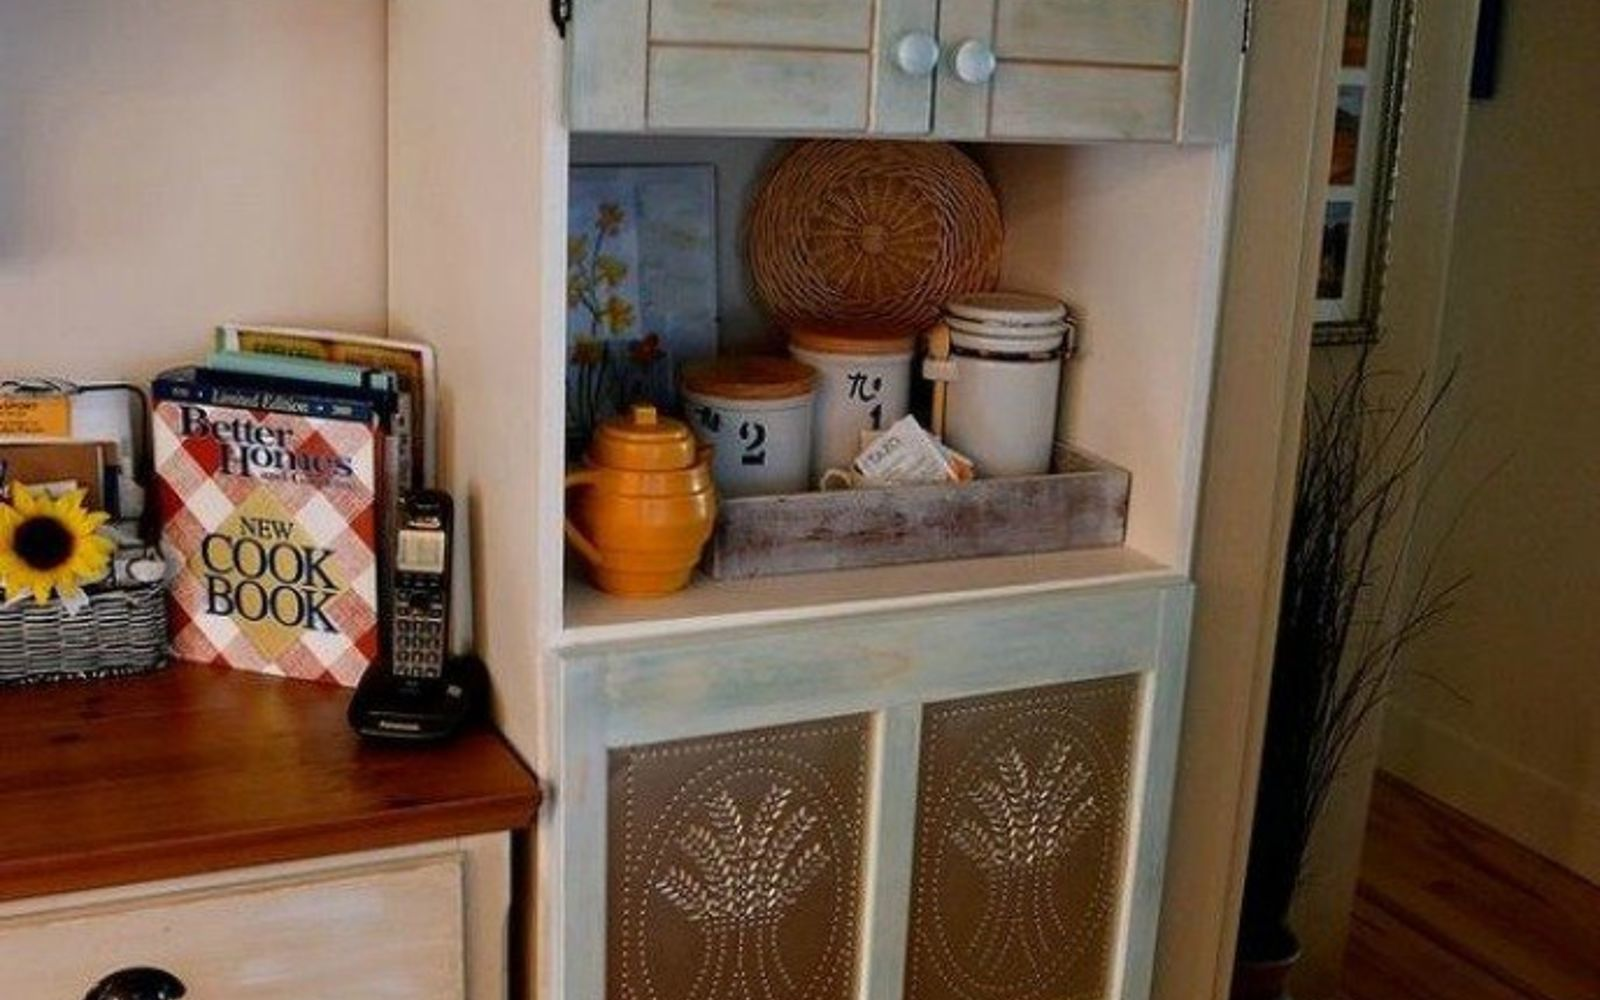 s transform your kitchen cabinets without paint 11 ideas , kitchen cabinets, kitchen design, Cover them with tin panels